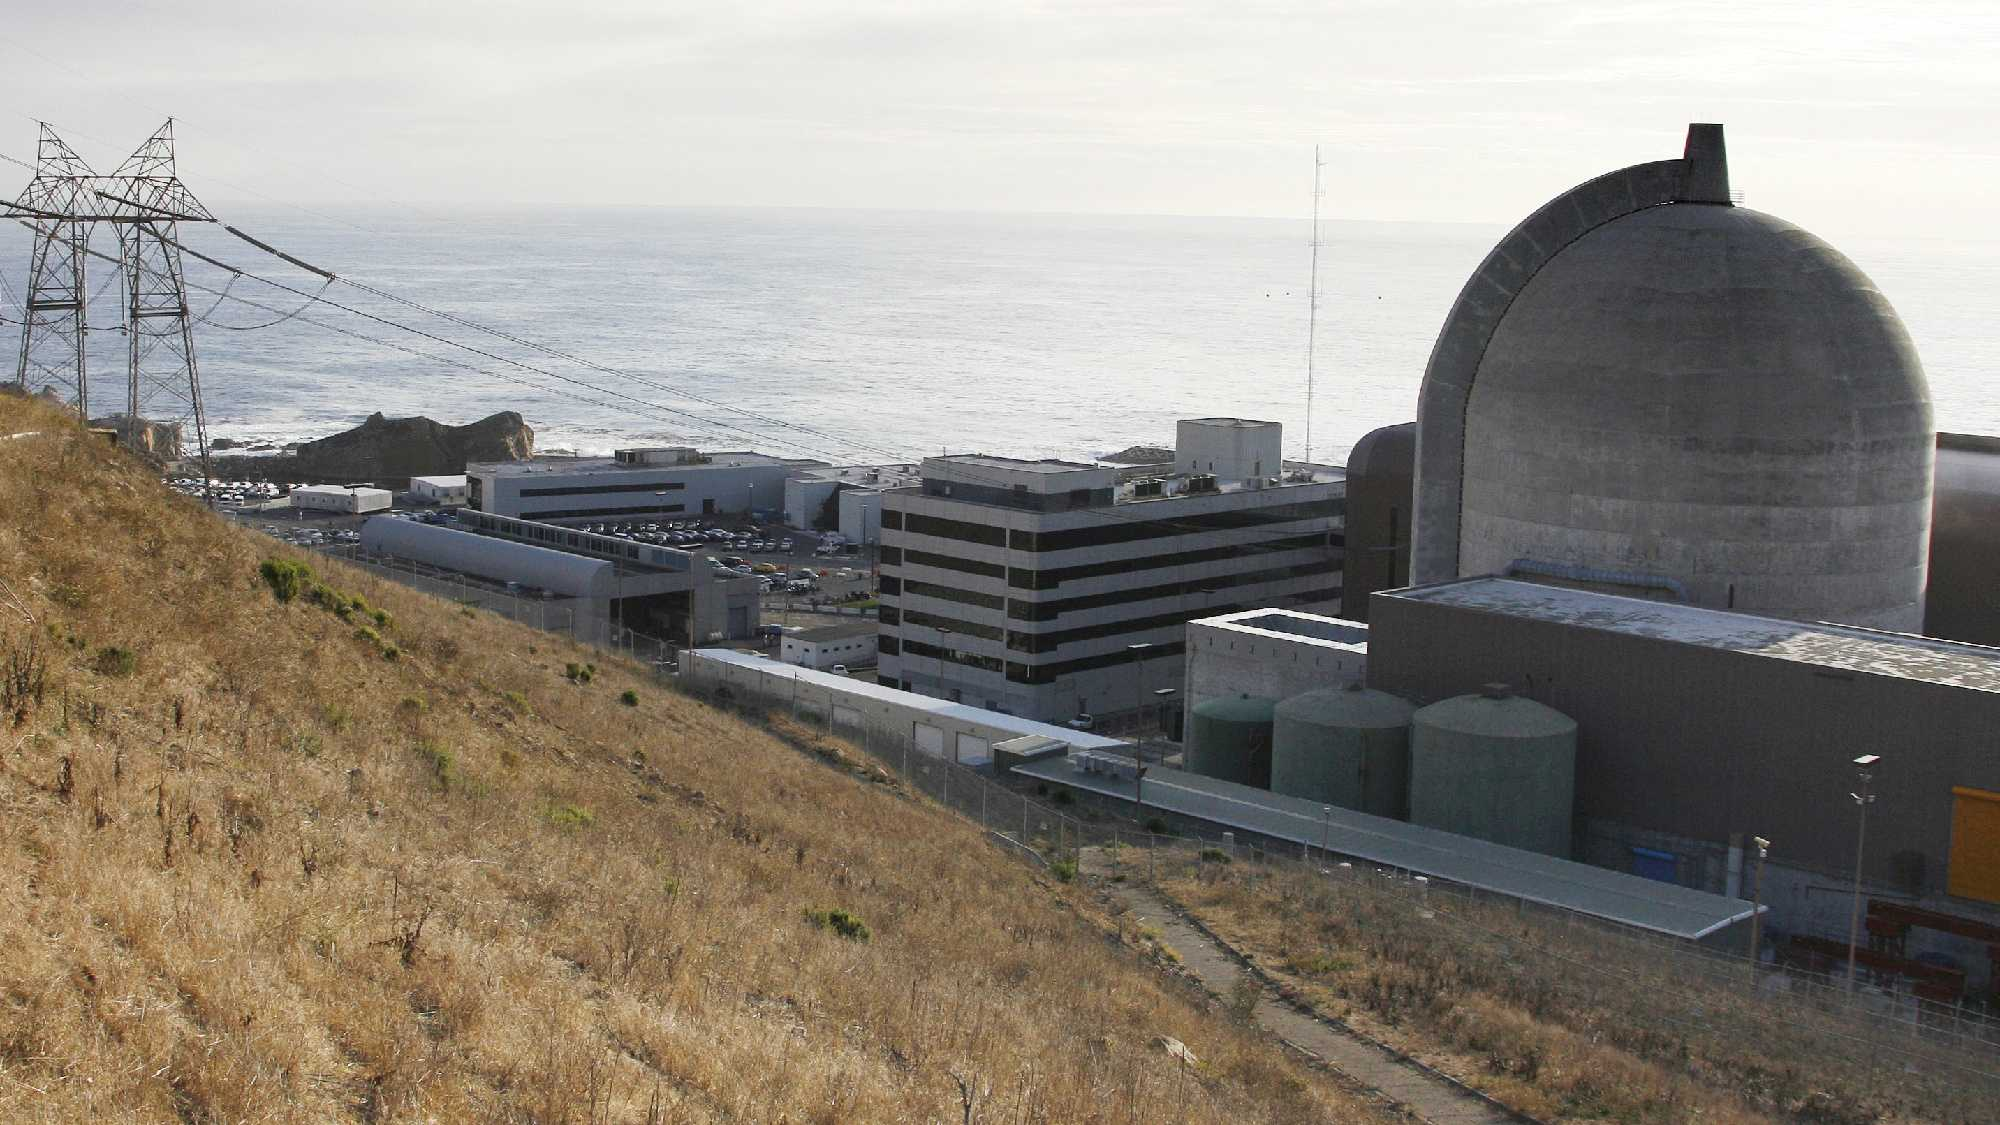 This Monday Nov. 3, 2008 file photo shows one of PG&E's Diablo Canyon Power Plant's nuclear reactors in Avila Beach, Calif.